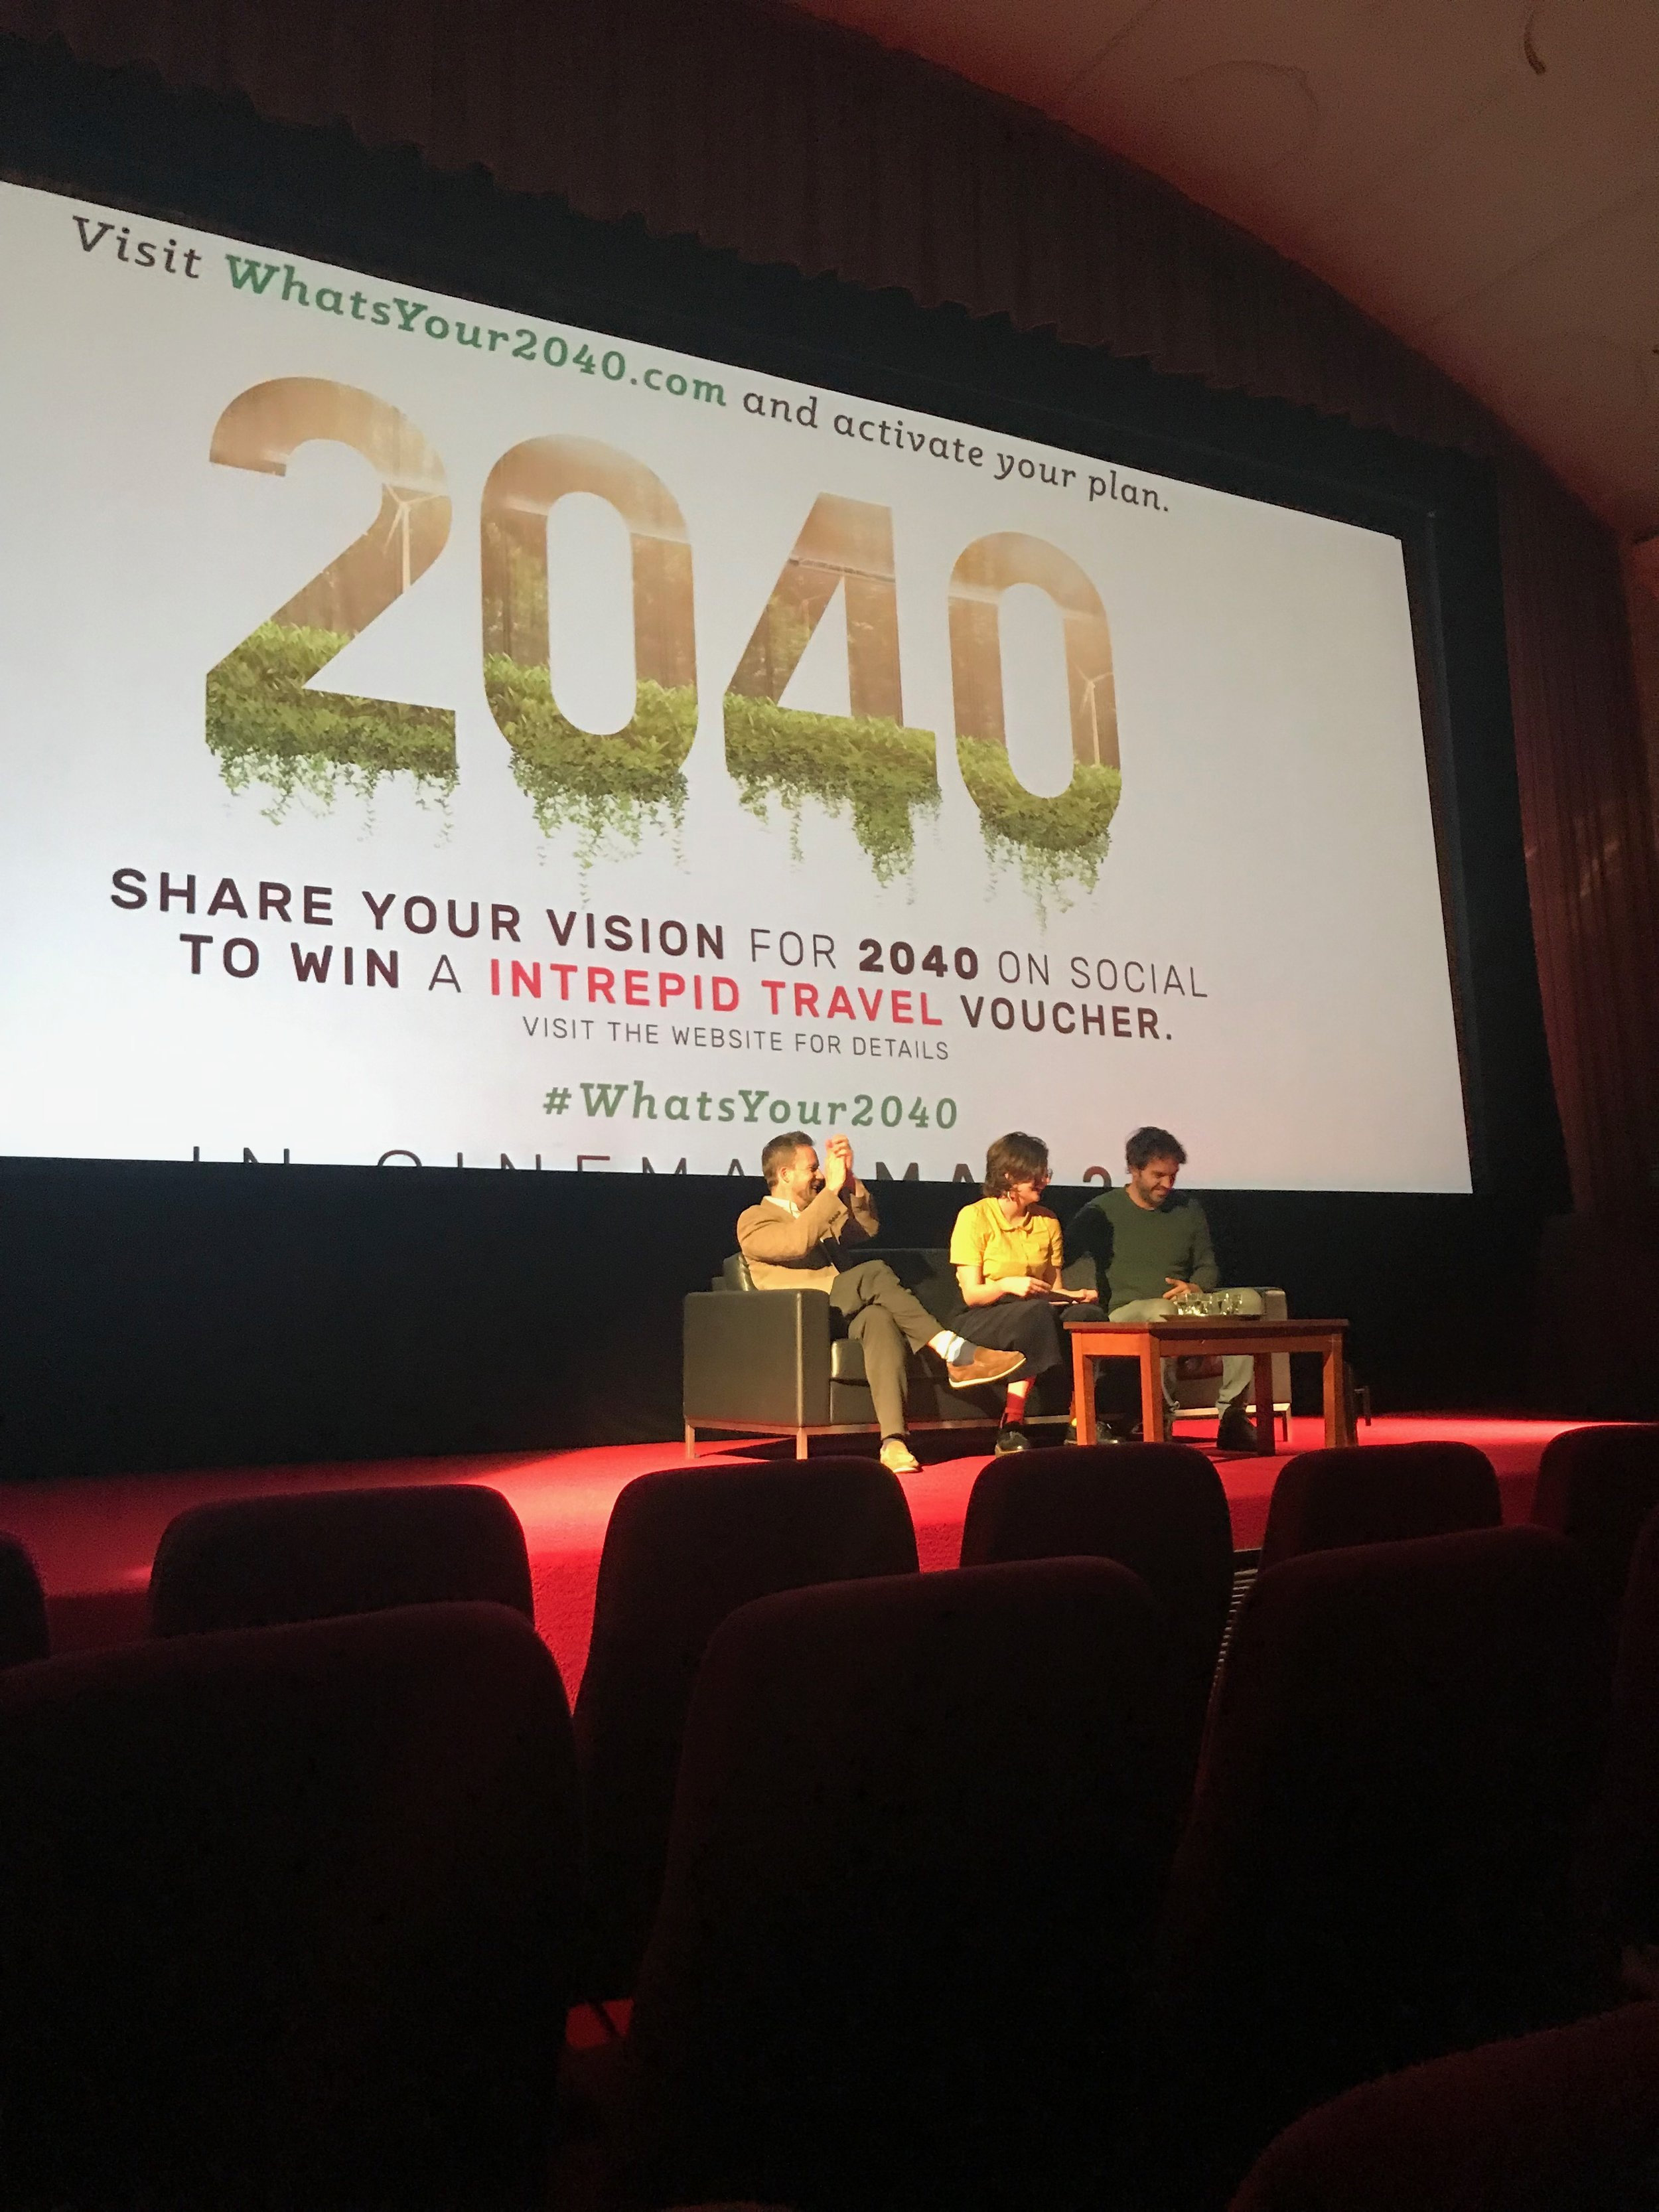 We encourage you all to go see the 2040 movie by Damon Gameau. Spread the word and activate your plan to bring to life YOUR 2040 at  WHATSYOUR2040